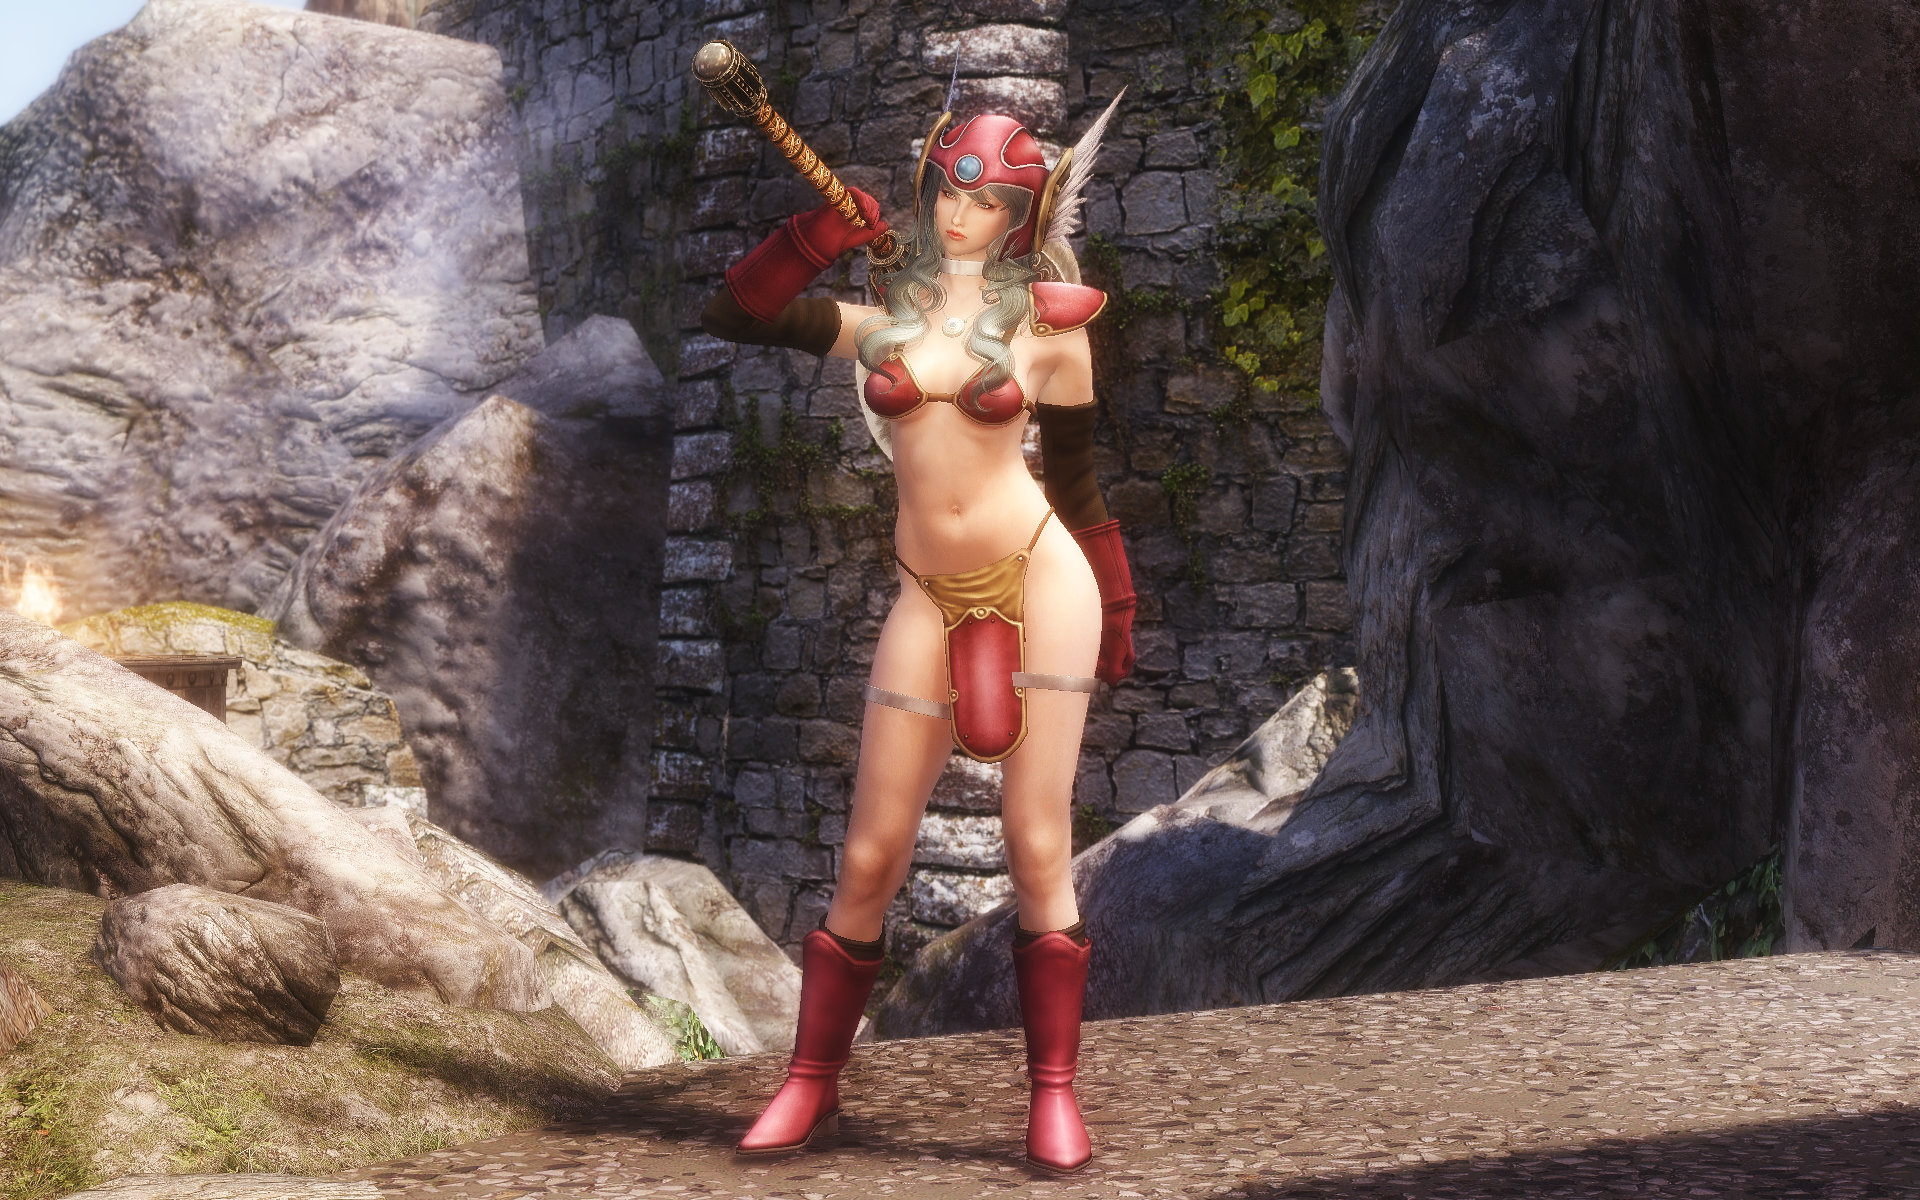 Dragon Quest Red Warrior Armor (DQ3 Female Worrior Armor)